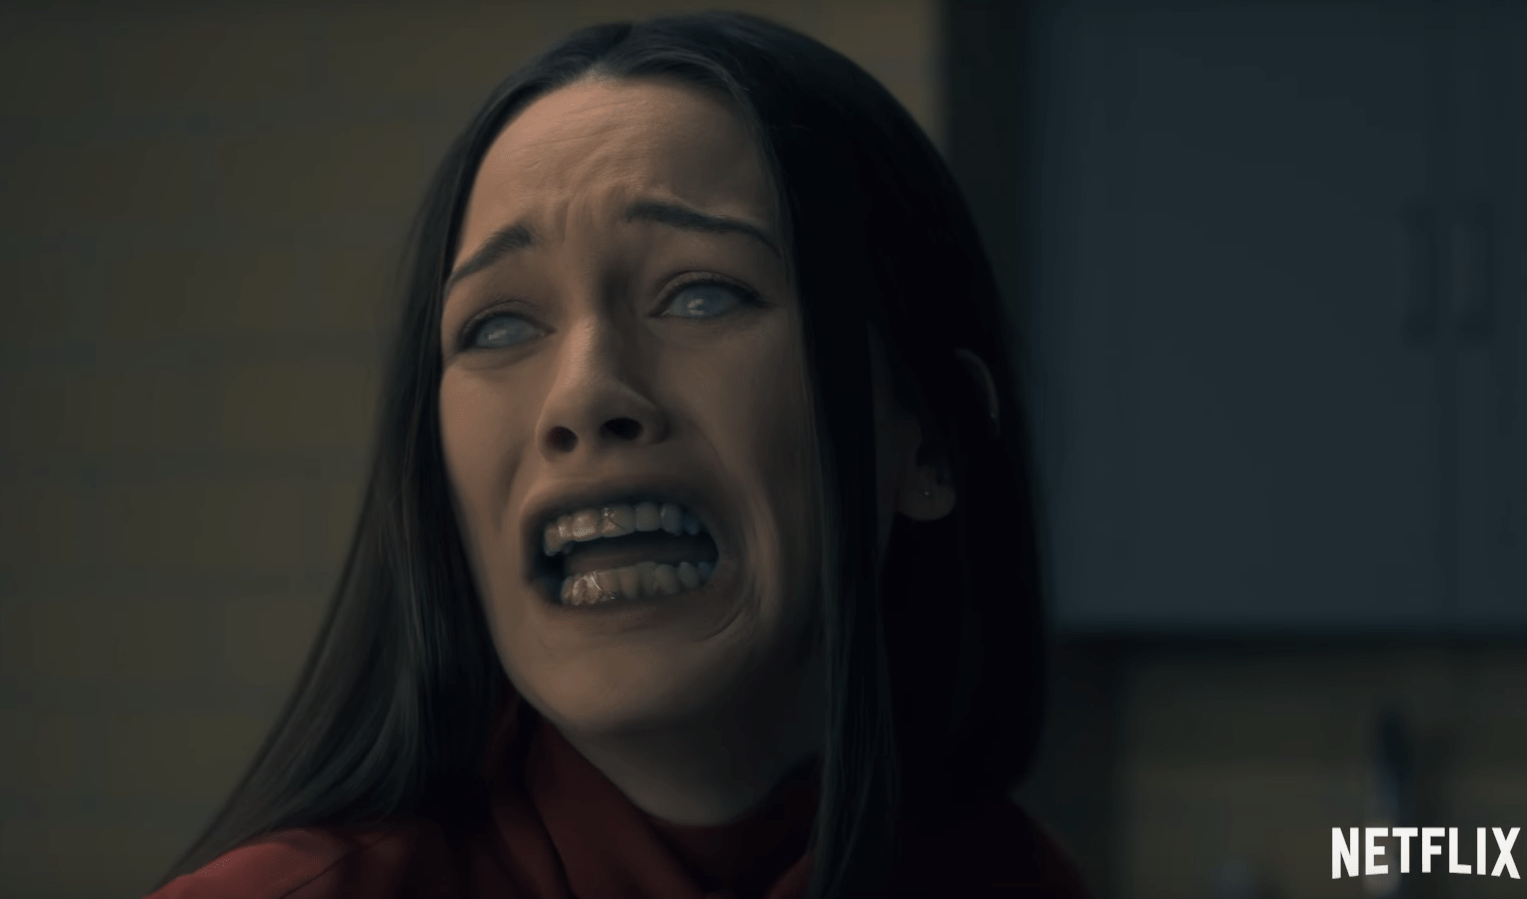 """Full Details: Extended Director's Cut of """"The Haunting of Hill House"""" Comes Home in October - Bloody Disgusting"""